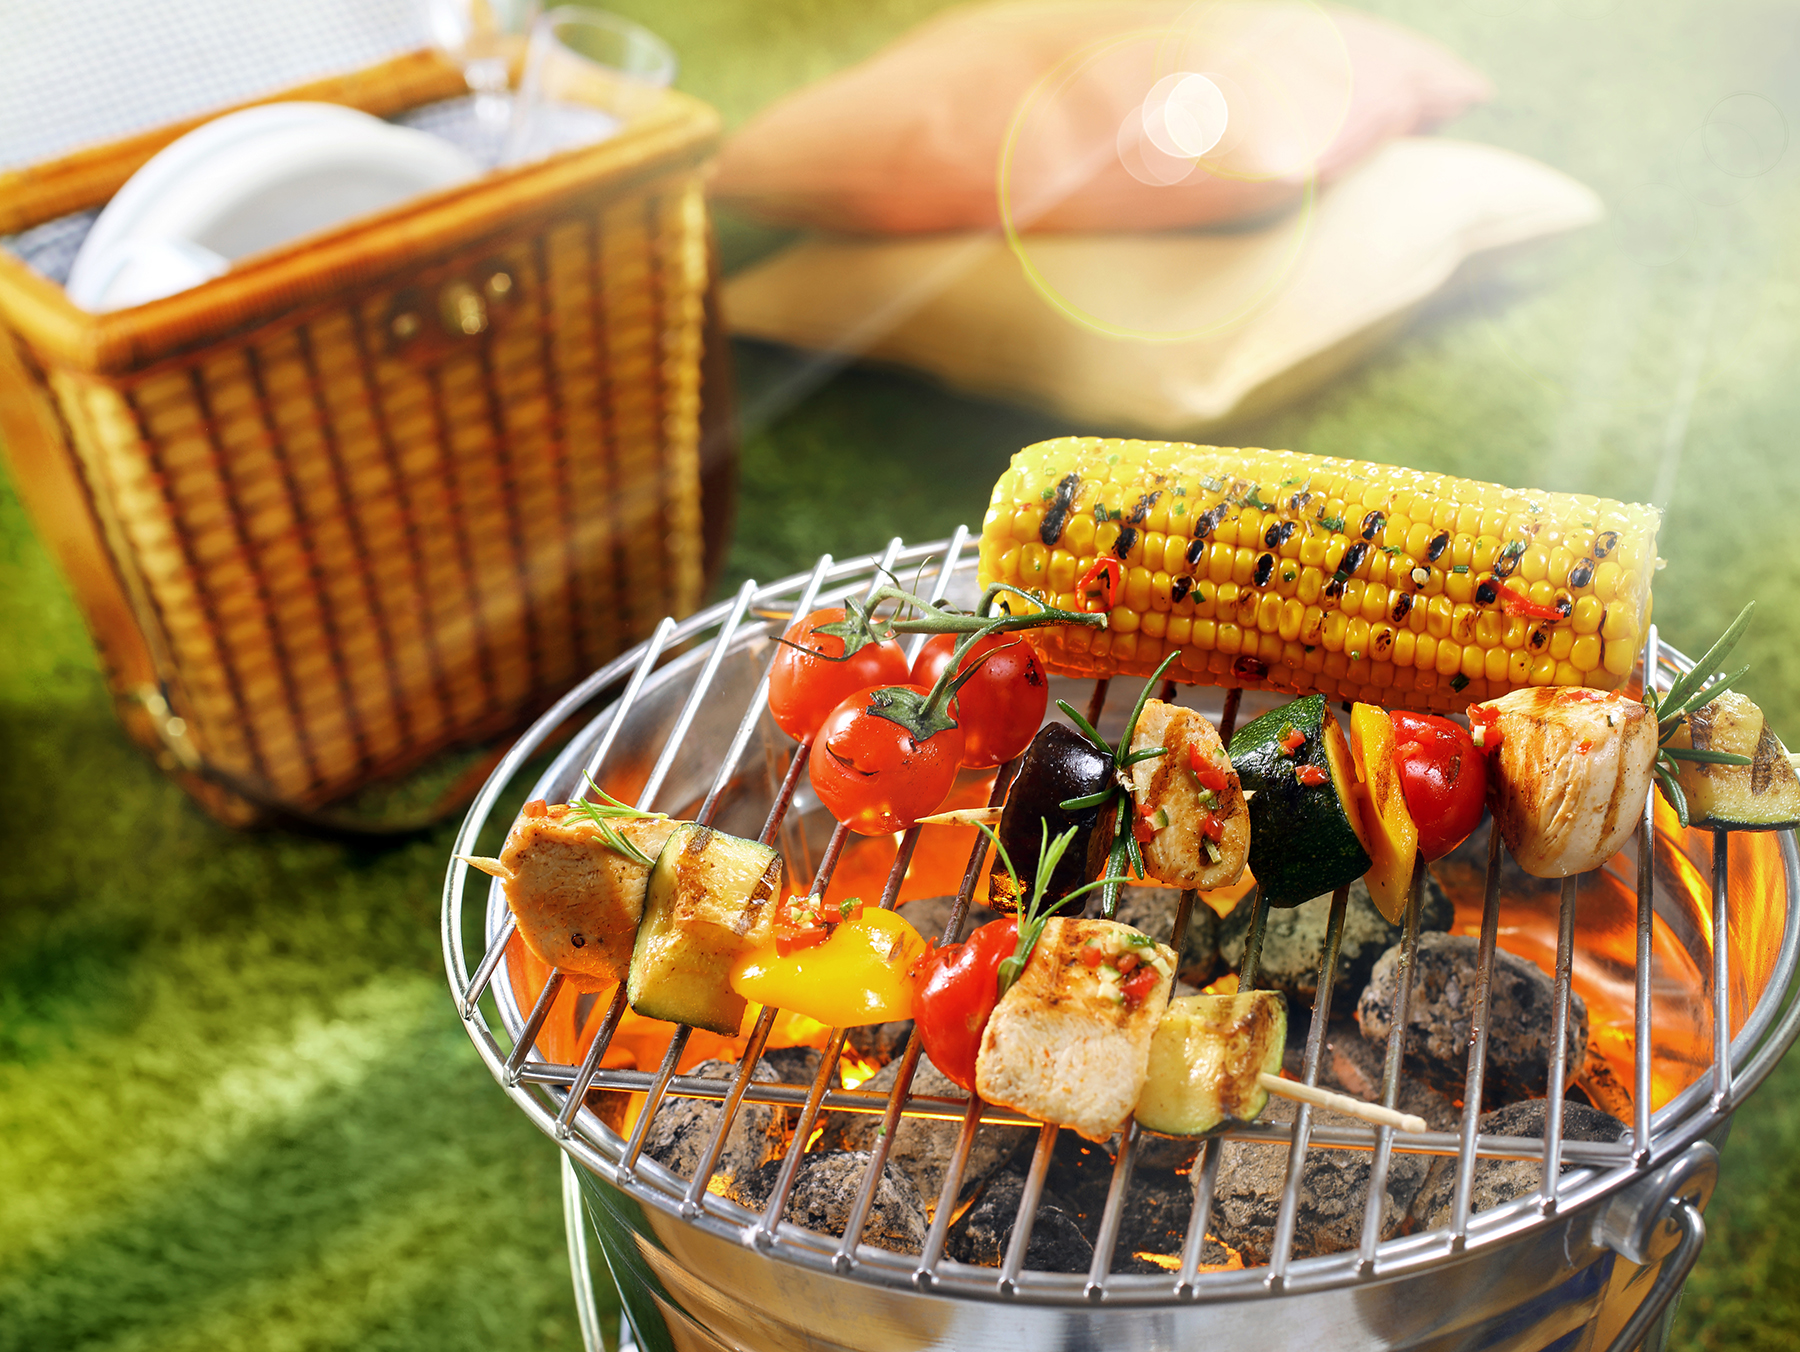 grilling vegetables and fruit